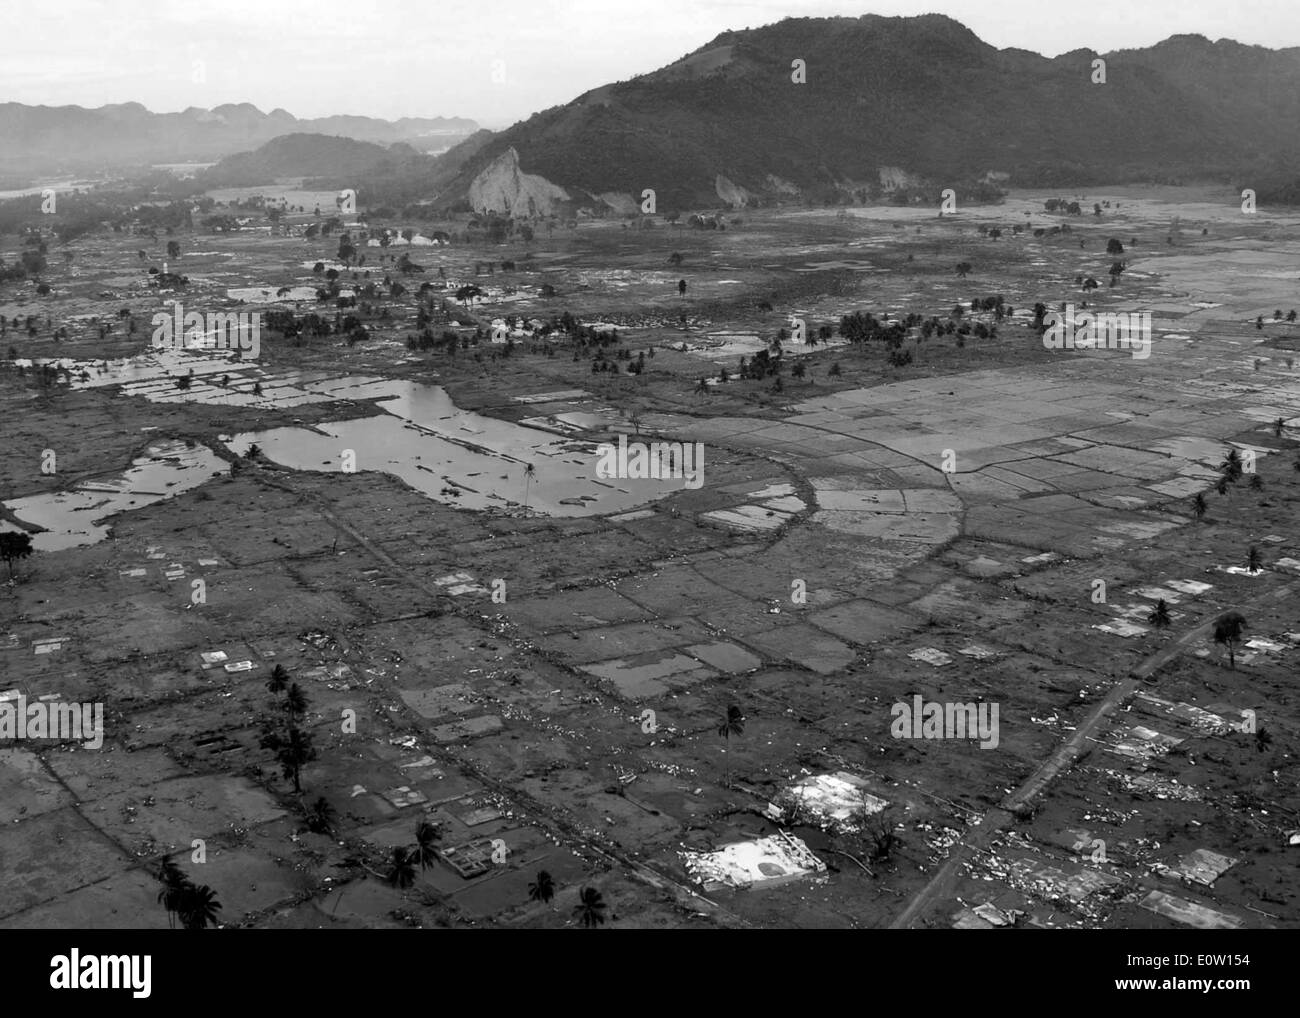 050102-N-9593M-029 Indian Ocean (Jan. 2, 2005) – A village near the coast of Sumatra lays in ruin after the Tsunami Stock Photo